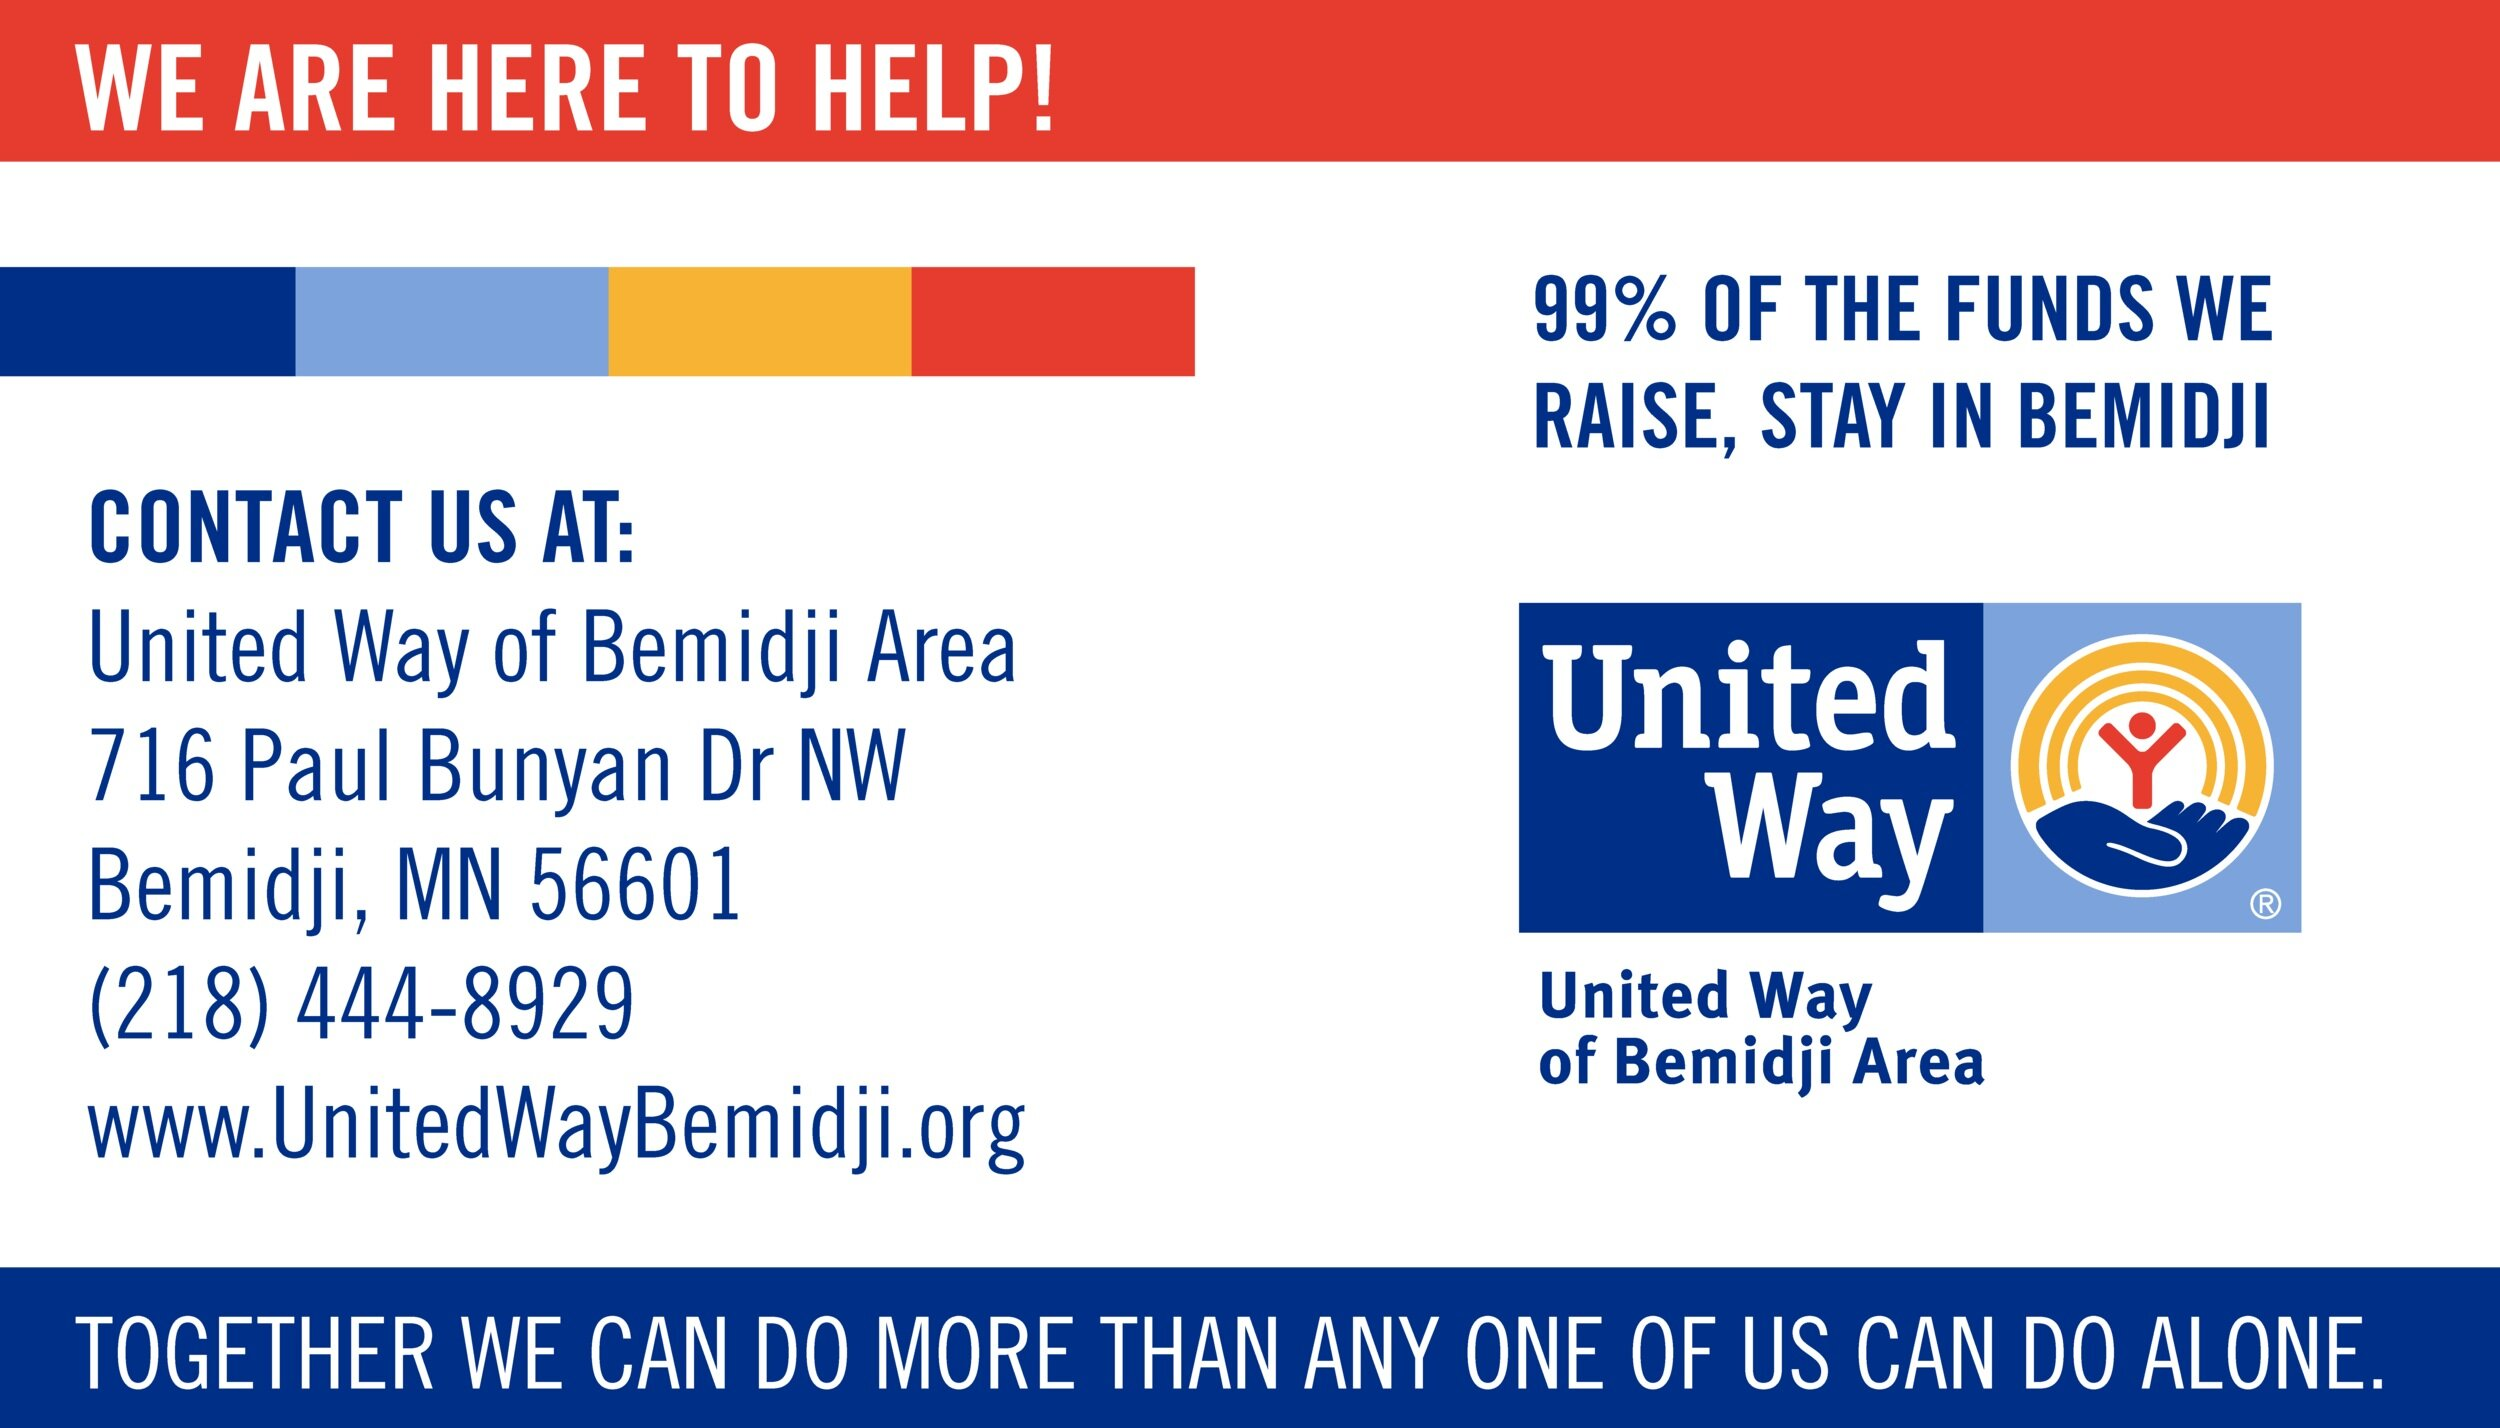 United Way of Bemidji Area contact information